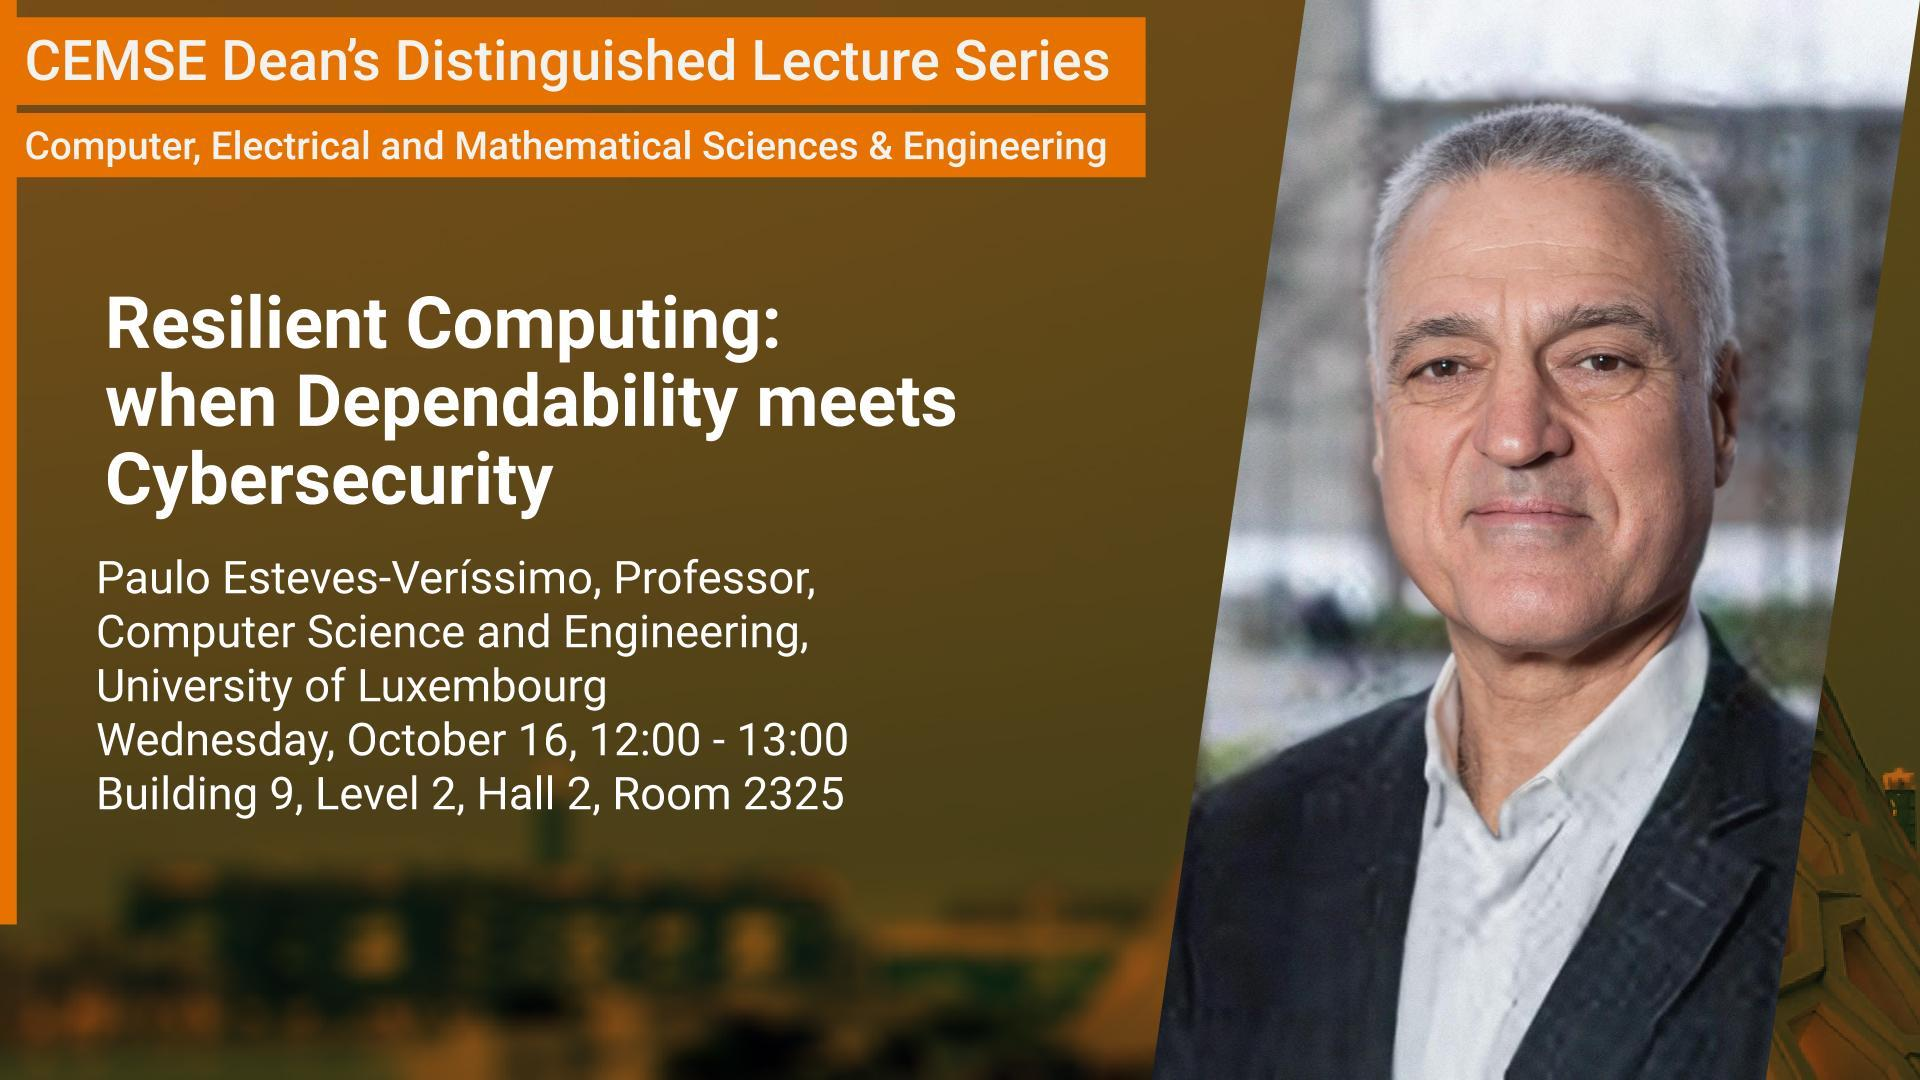 KAUST CEMSE CS Dean Distinguished Lecture Paulo Esteves Verissimo Resilient Computing